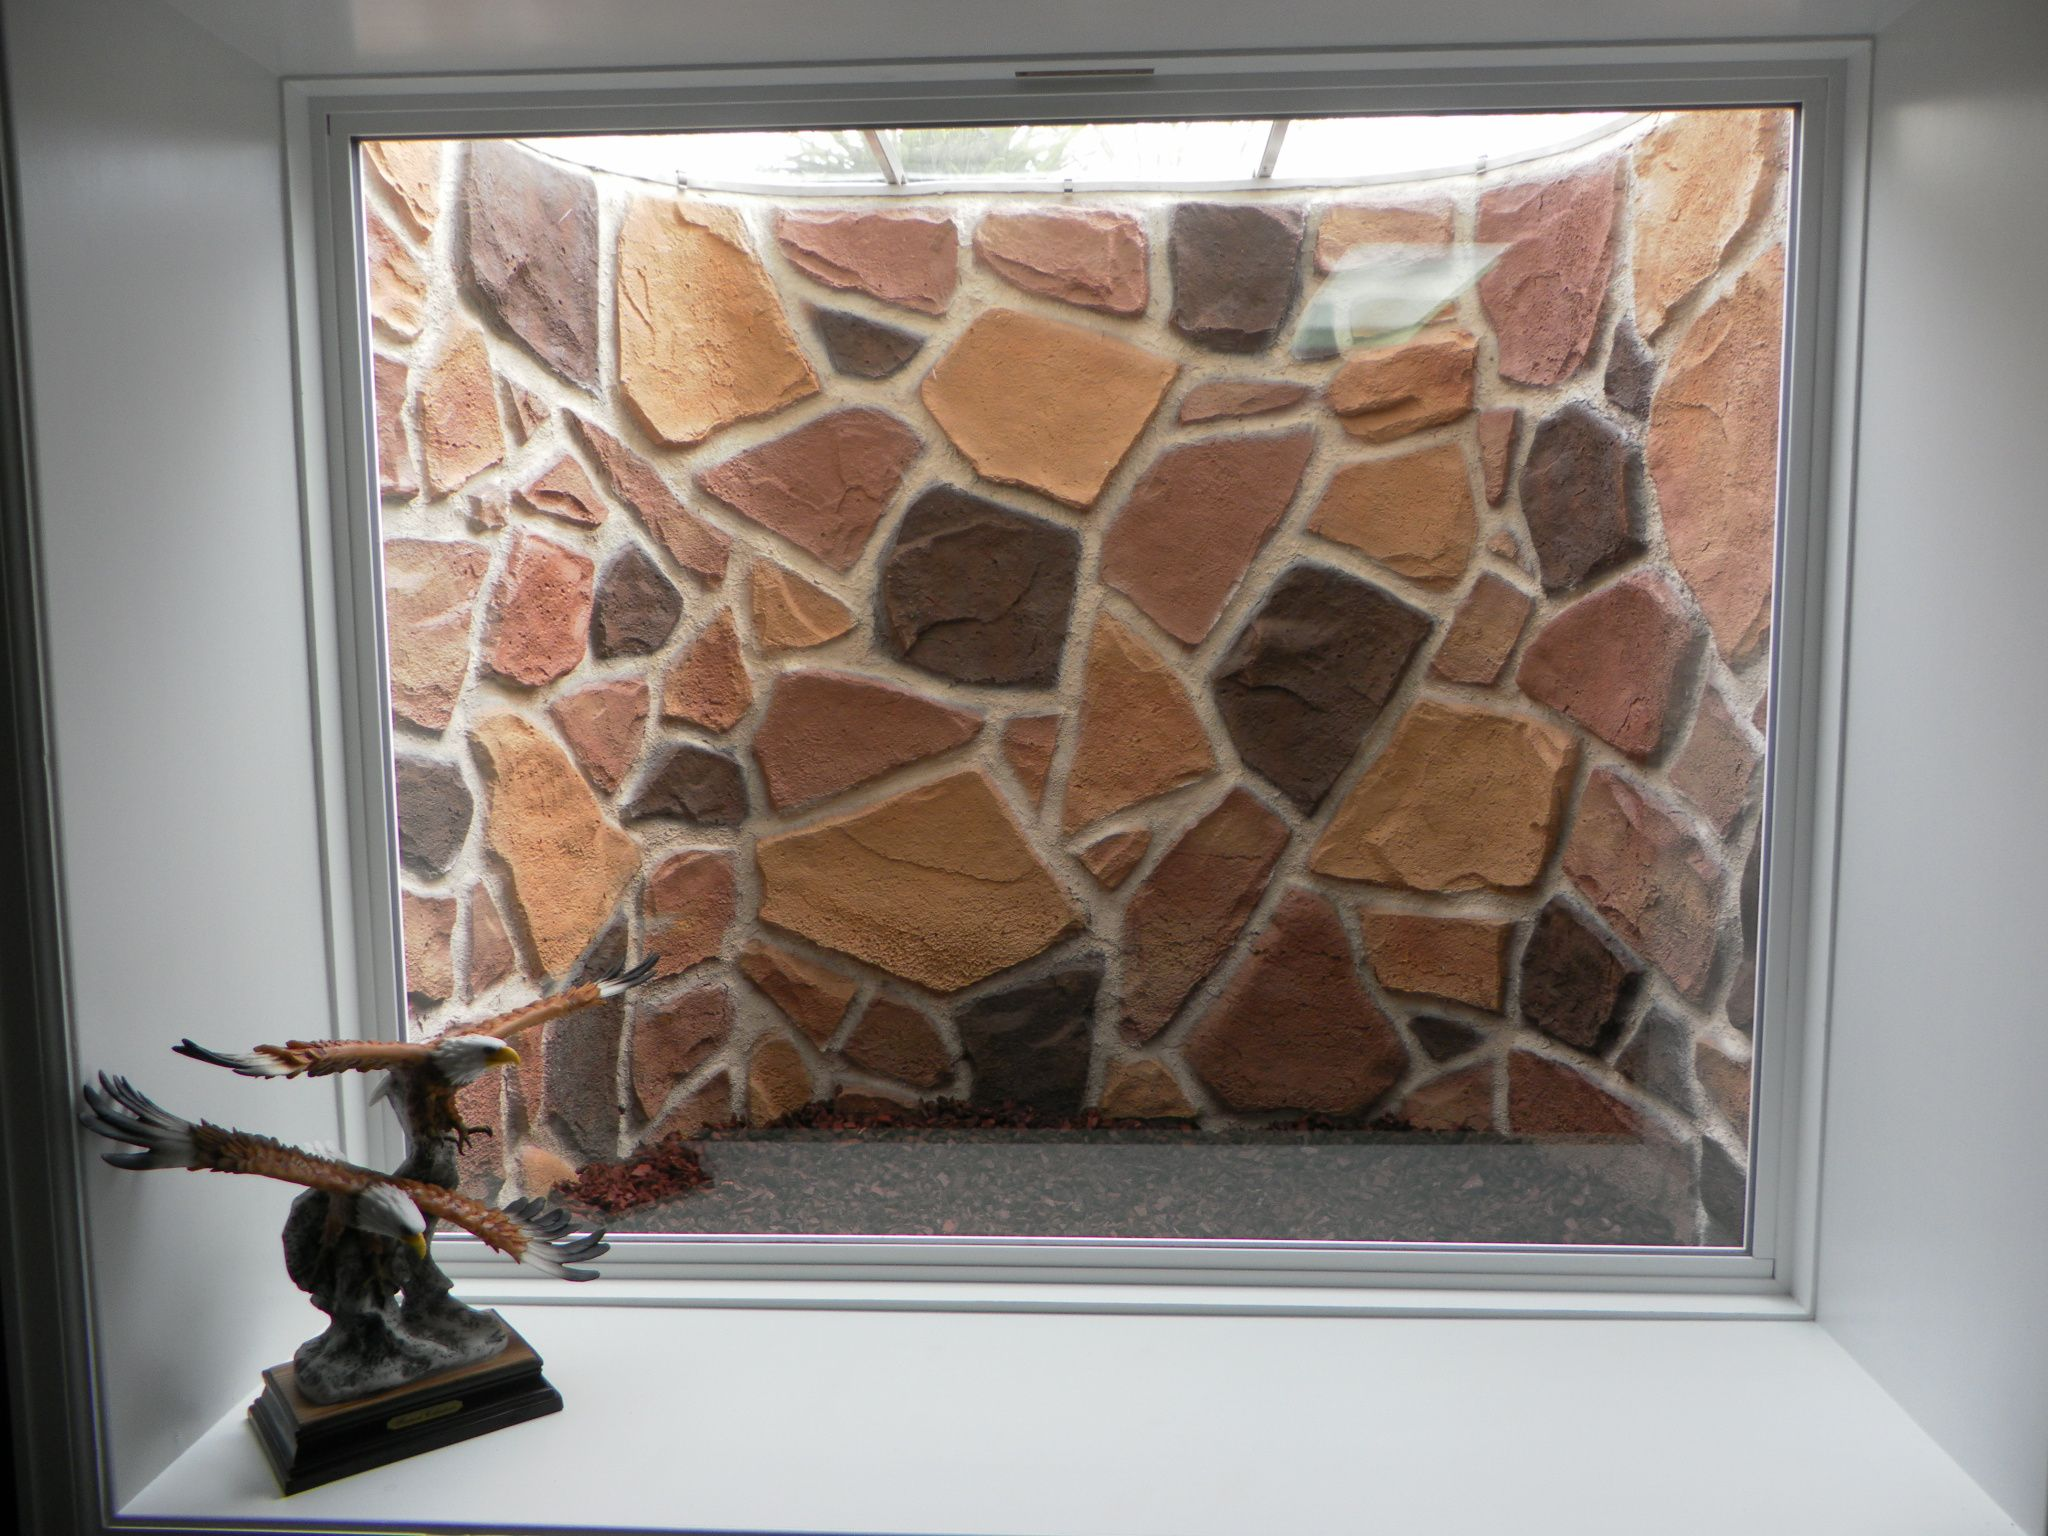 Basement windows more window ideas egress window basements windows - Find This Pin And More On Custom Window Well Liners By Ccustom3246